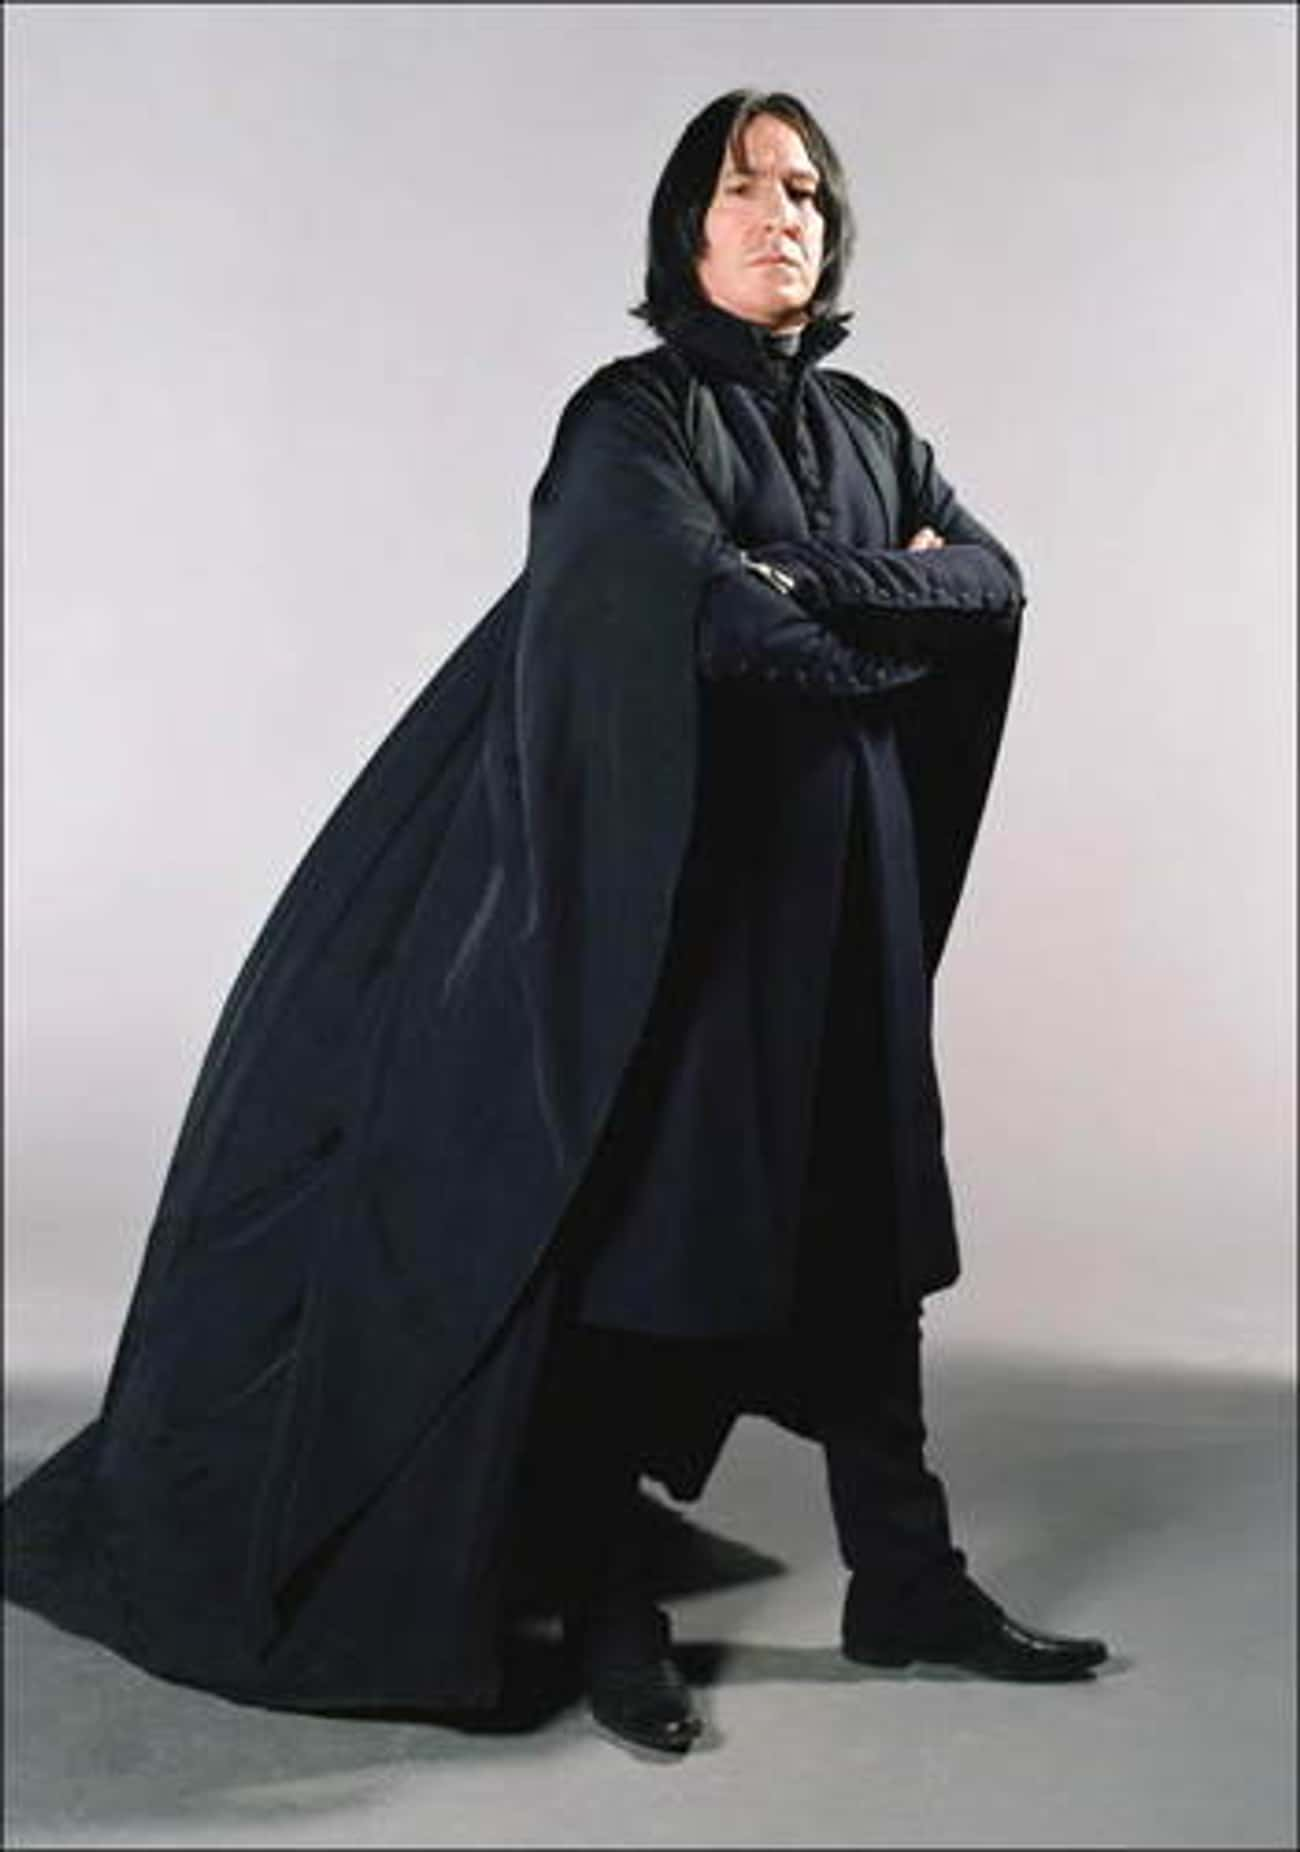 Alan Rickman in Mr. Snape Outf is listed (or ranked) 2 on the list Hot Alan Rickman Photos